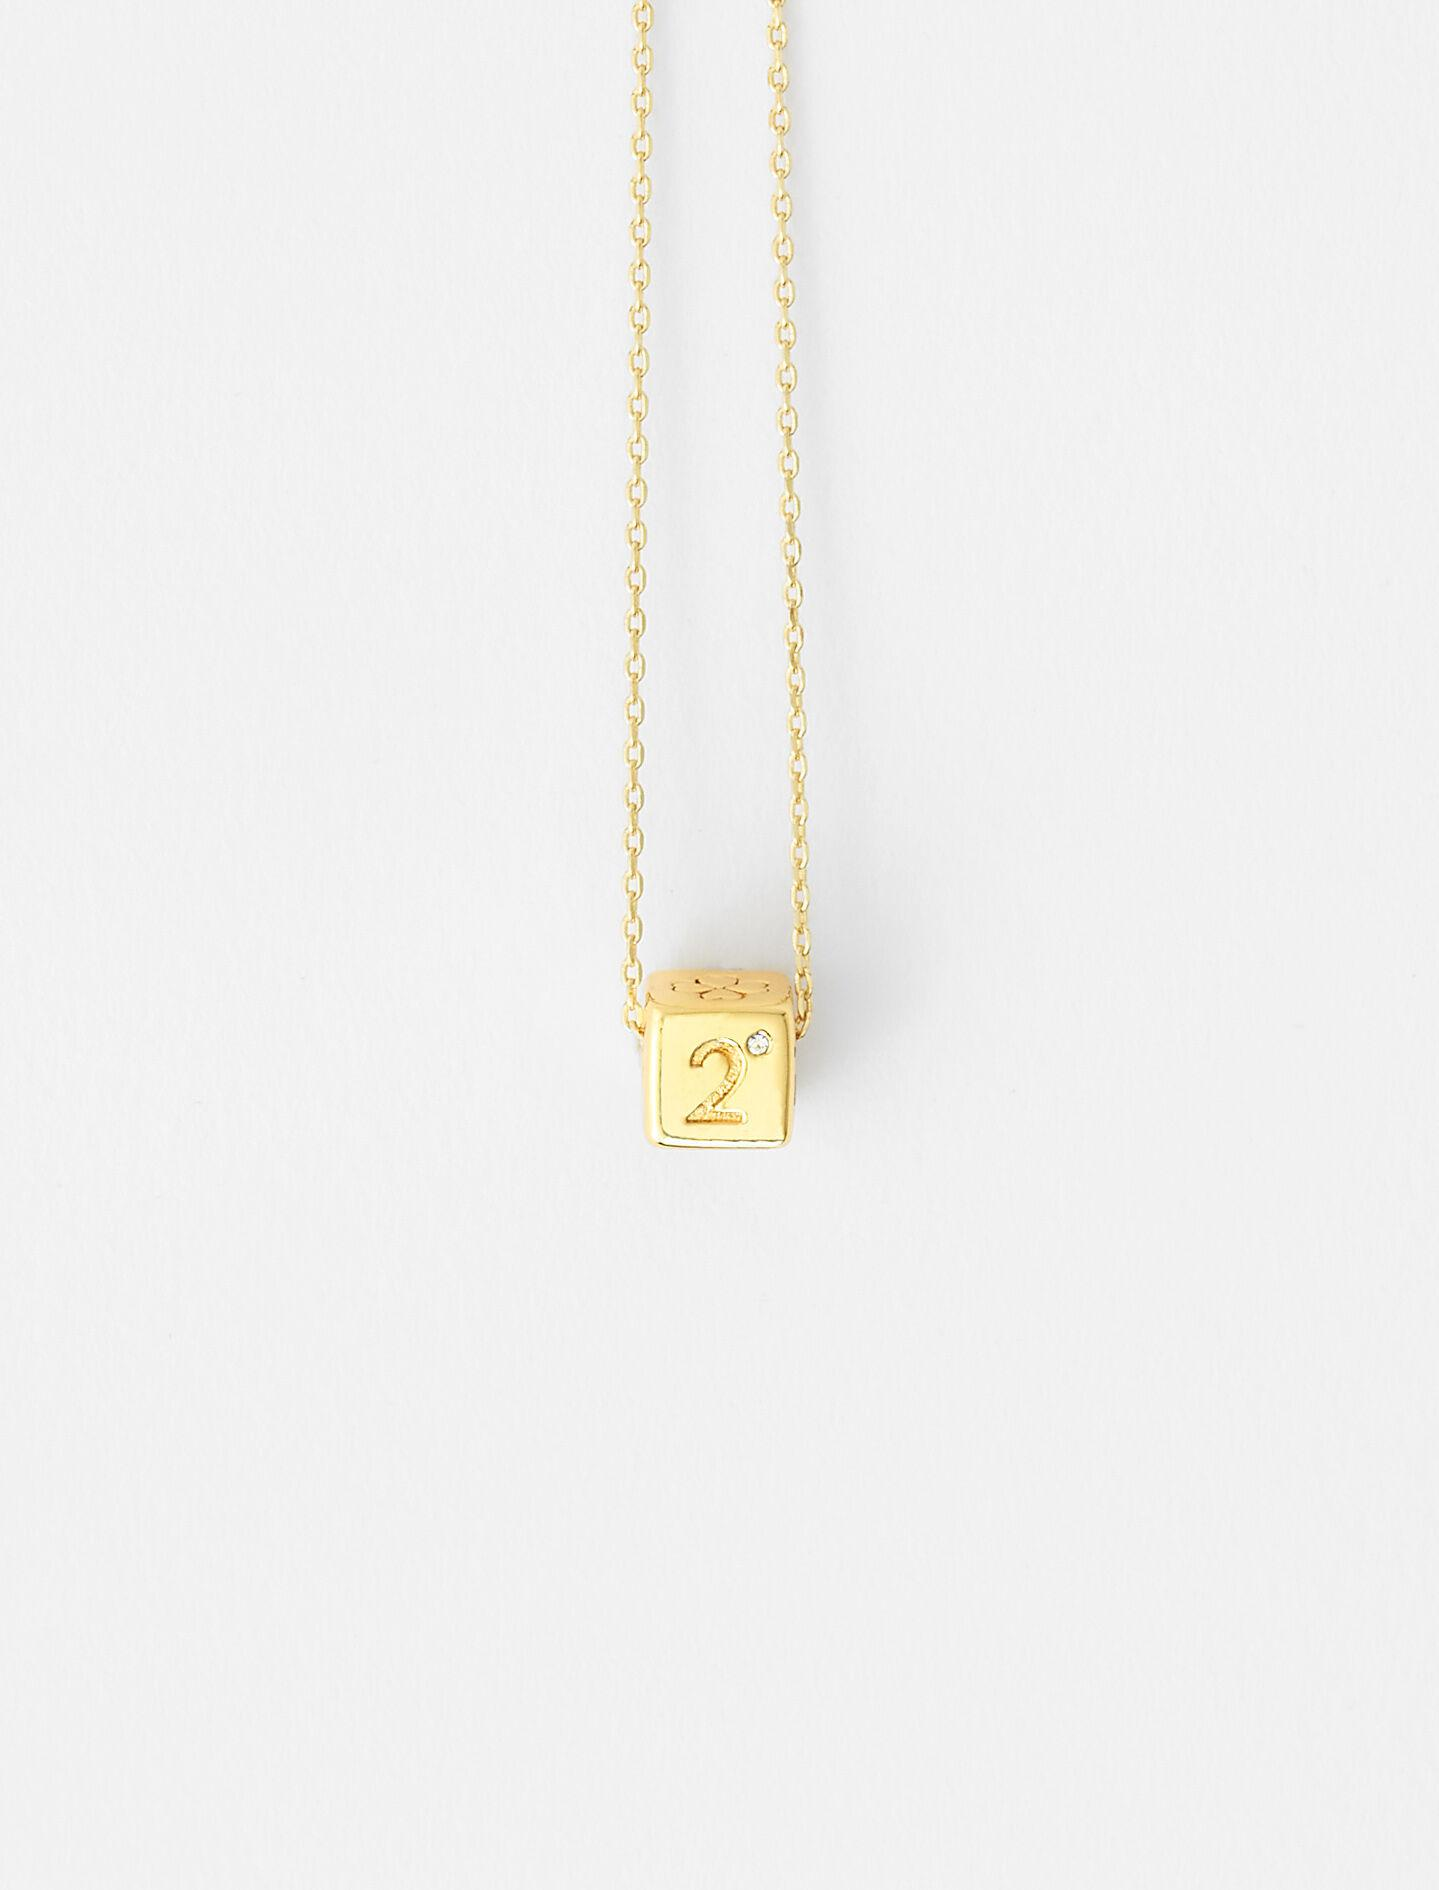 NUMBER 2 DICE NECKLACE